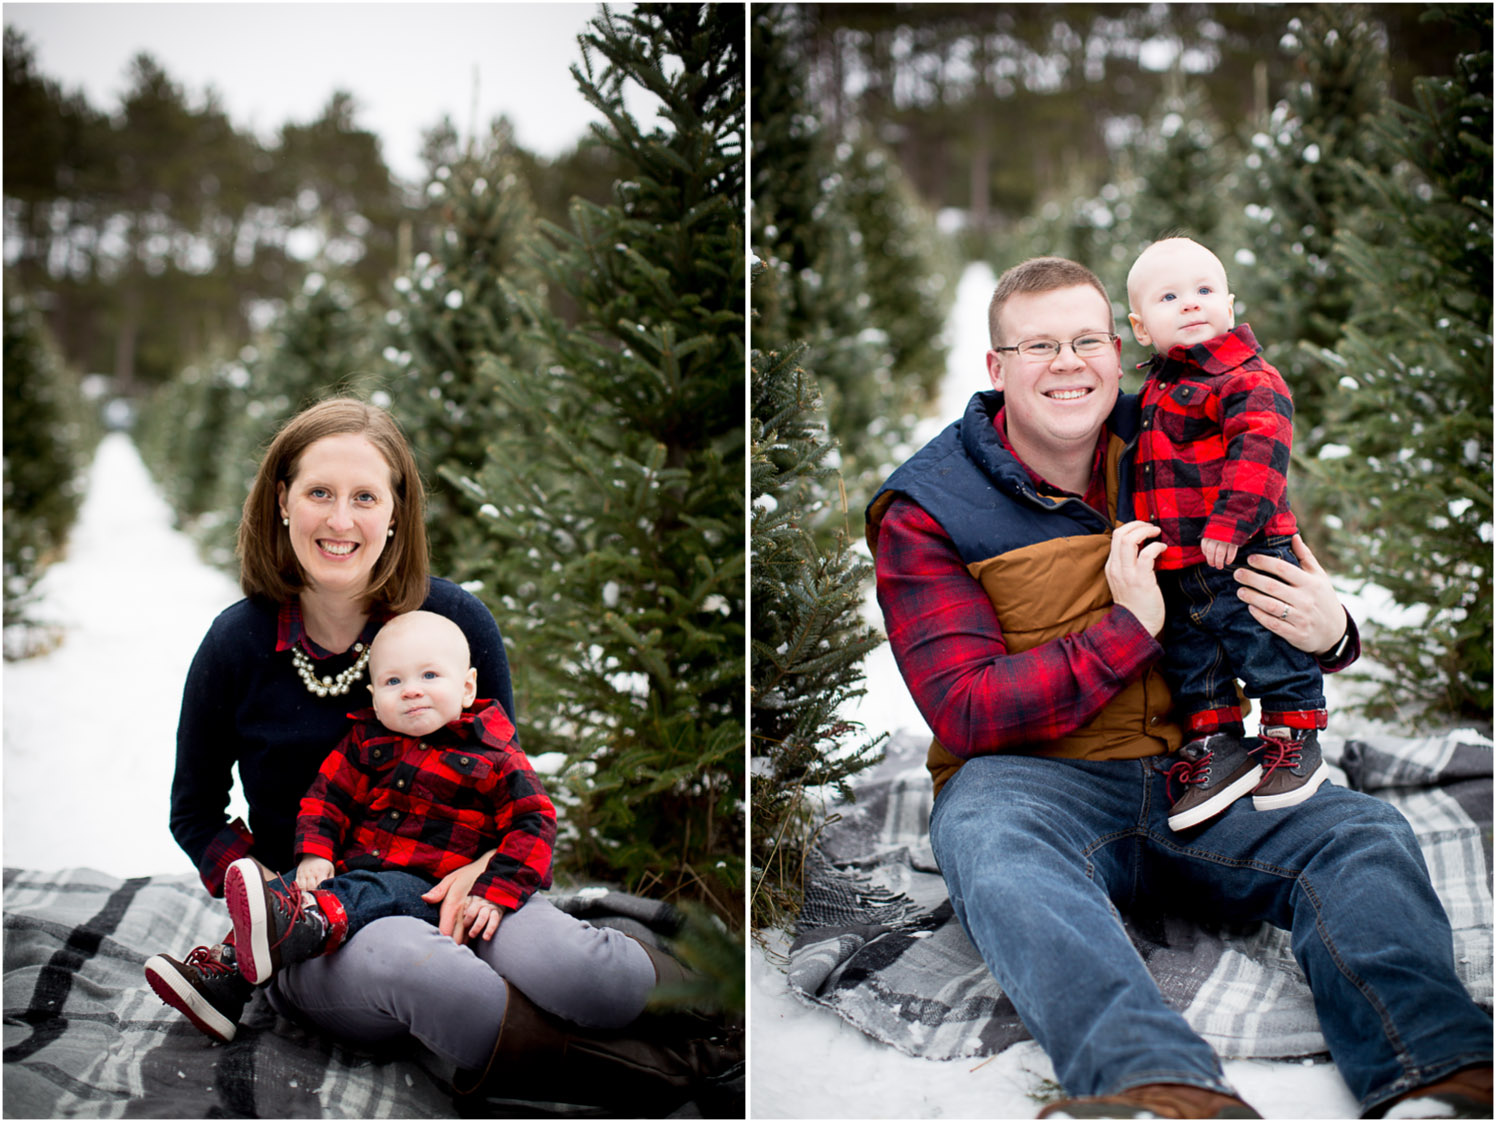 08-hansen-tree-farm-christmas-family-of-three-photographer-mn-mother-father-son-winter-gray-plaid-blanket-mahonen-photography.jpg